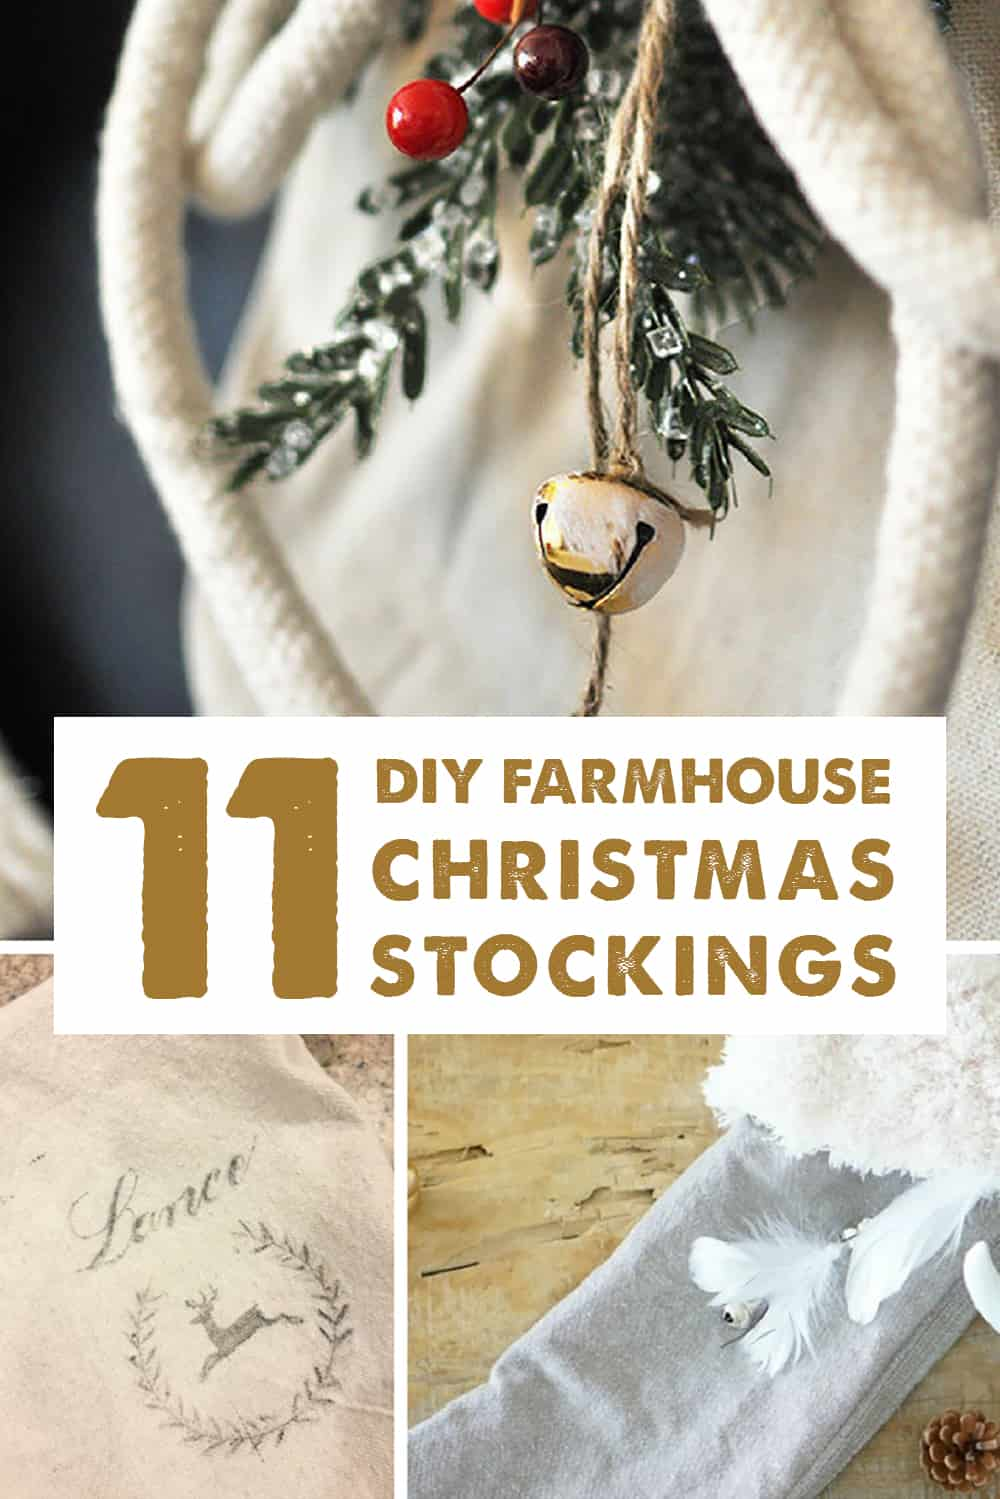 11 DIY Farmhouse Christmas Stockings